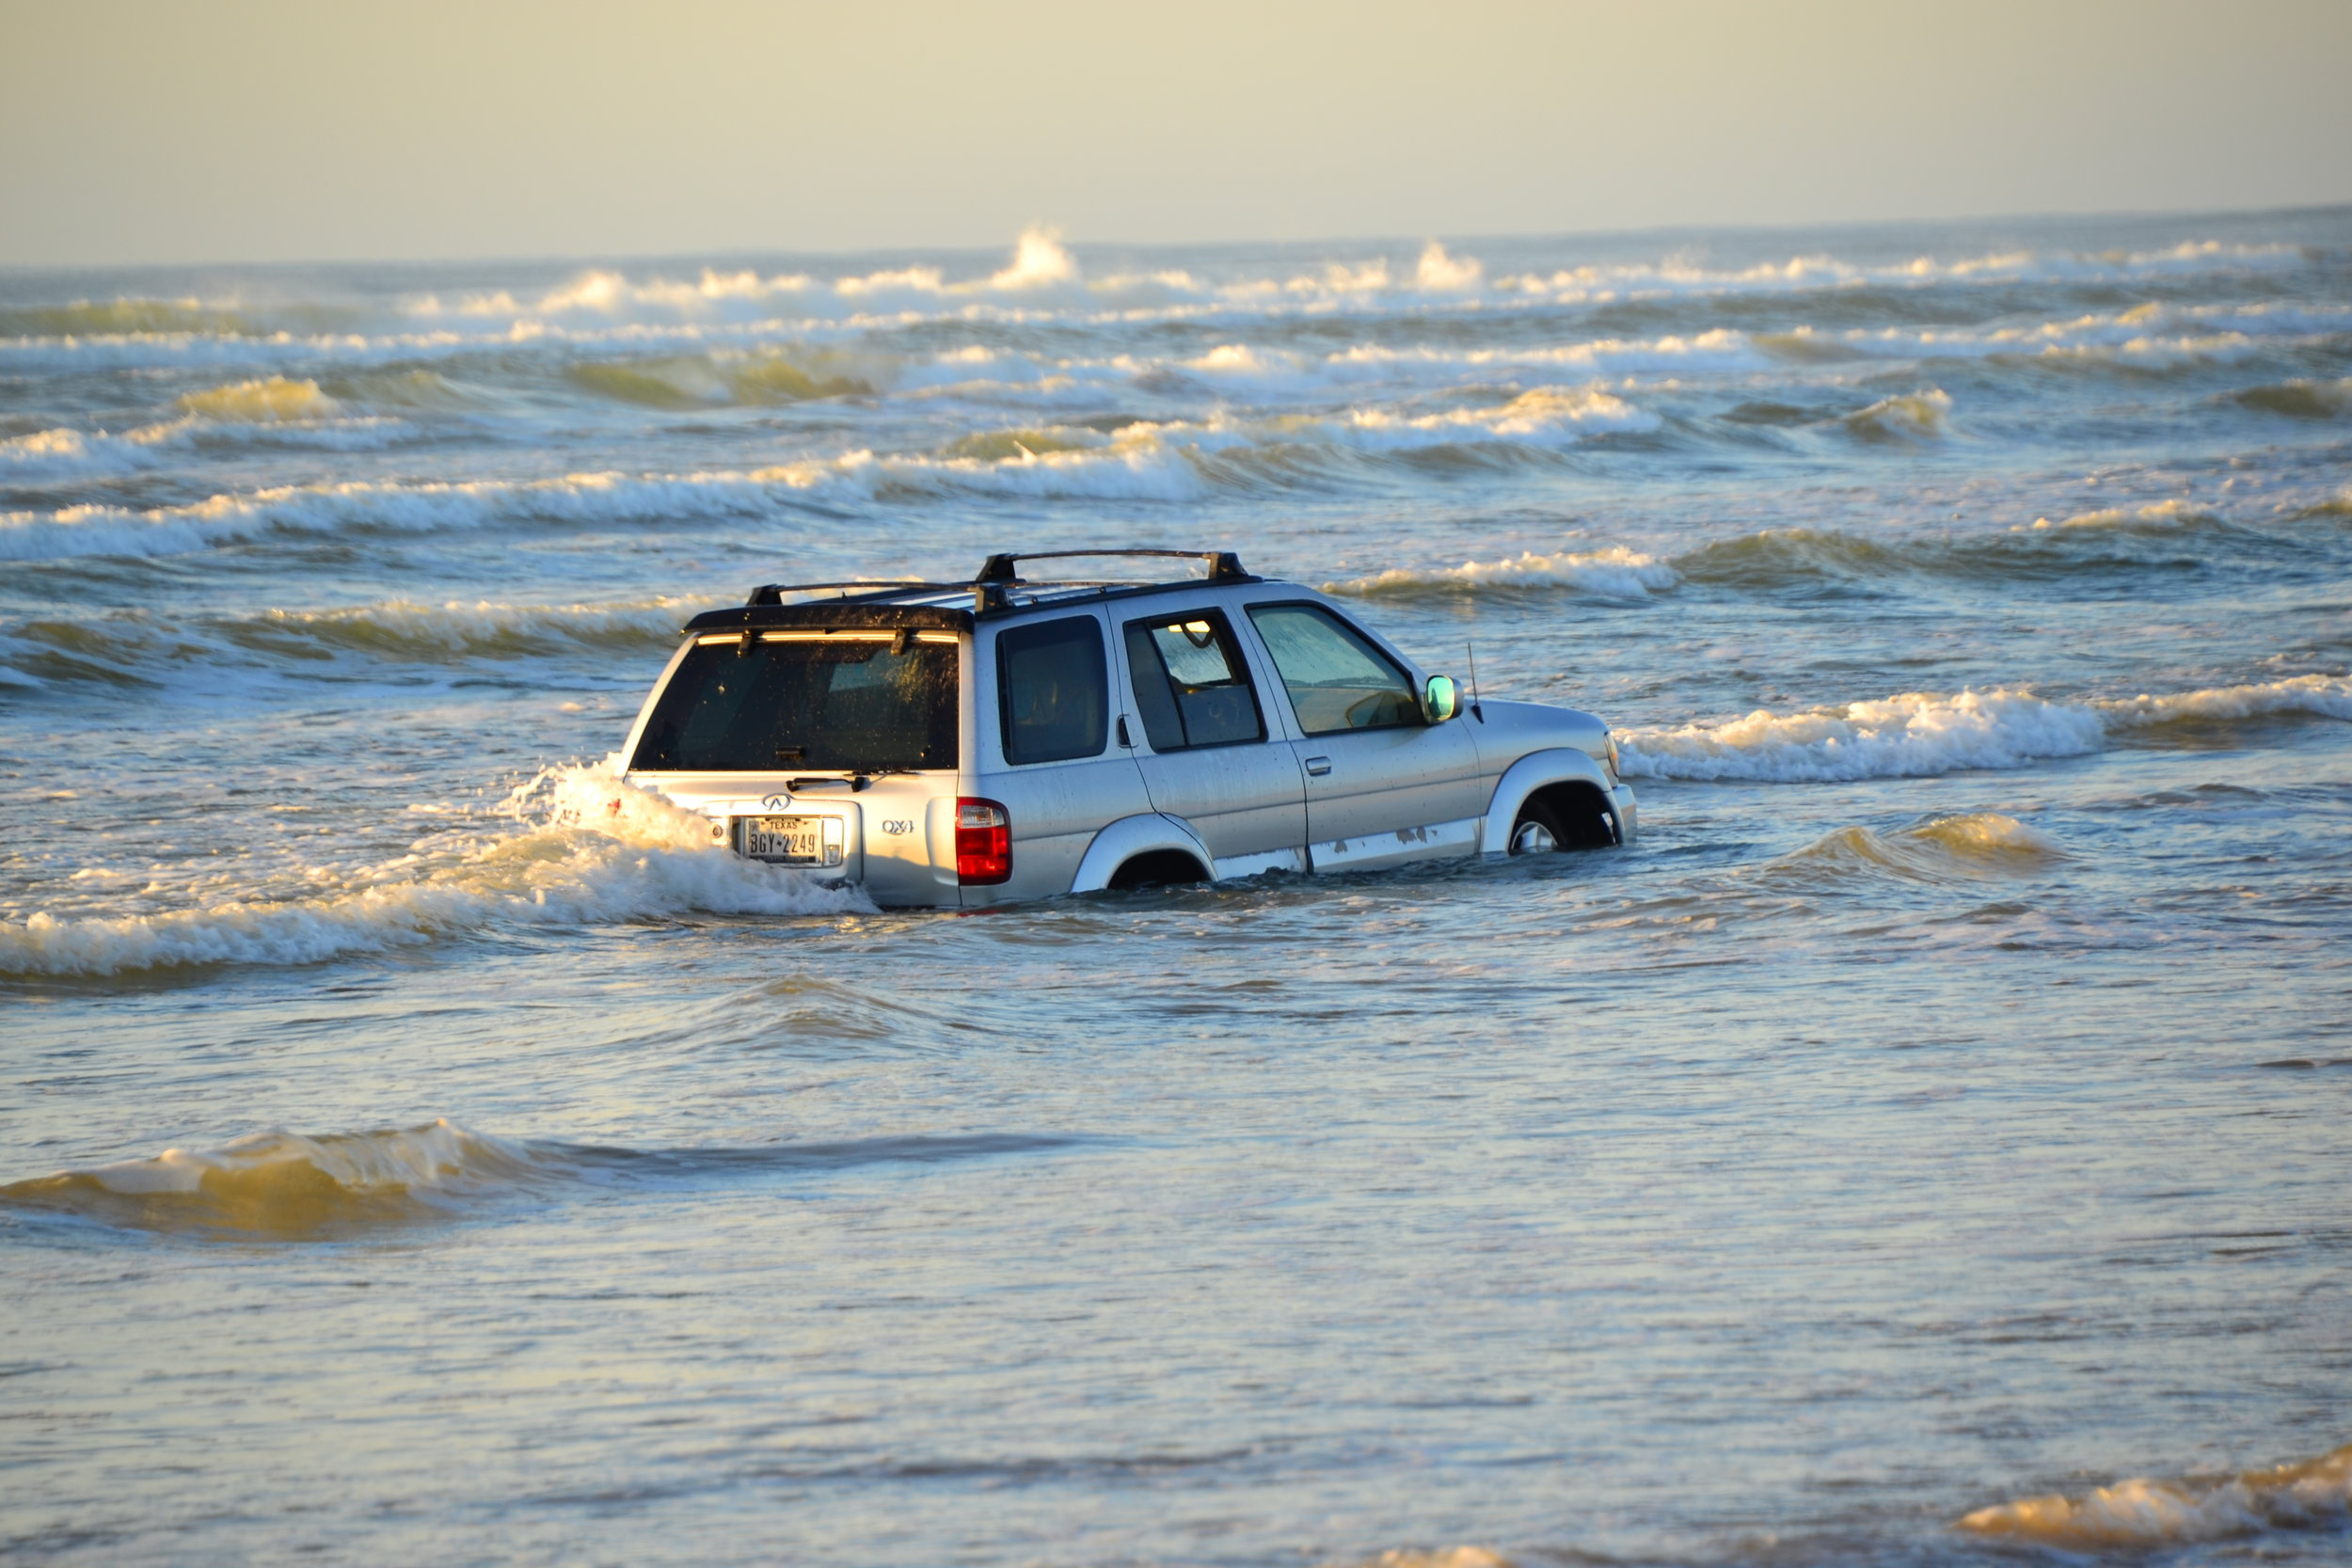 What a shame.  The surf does not discriminate, it will take a vehicle in a heartbeat.